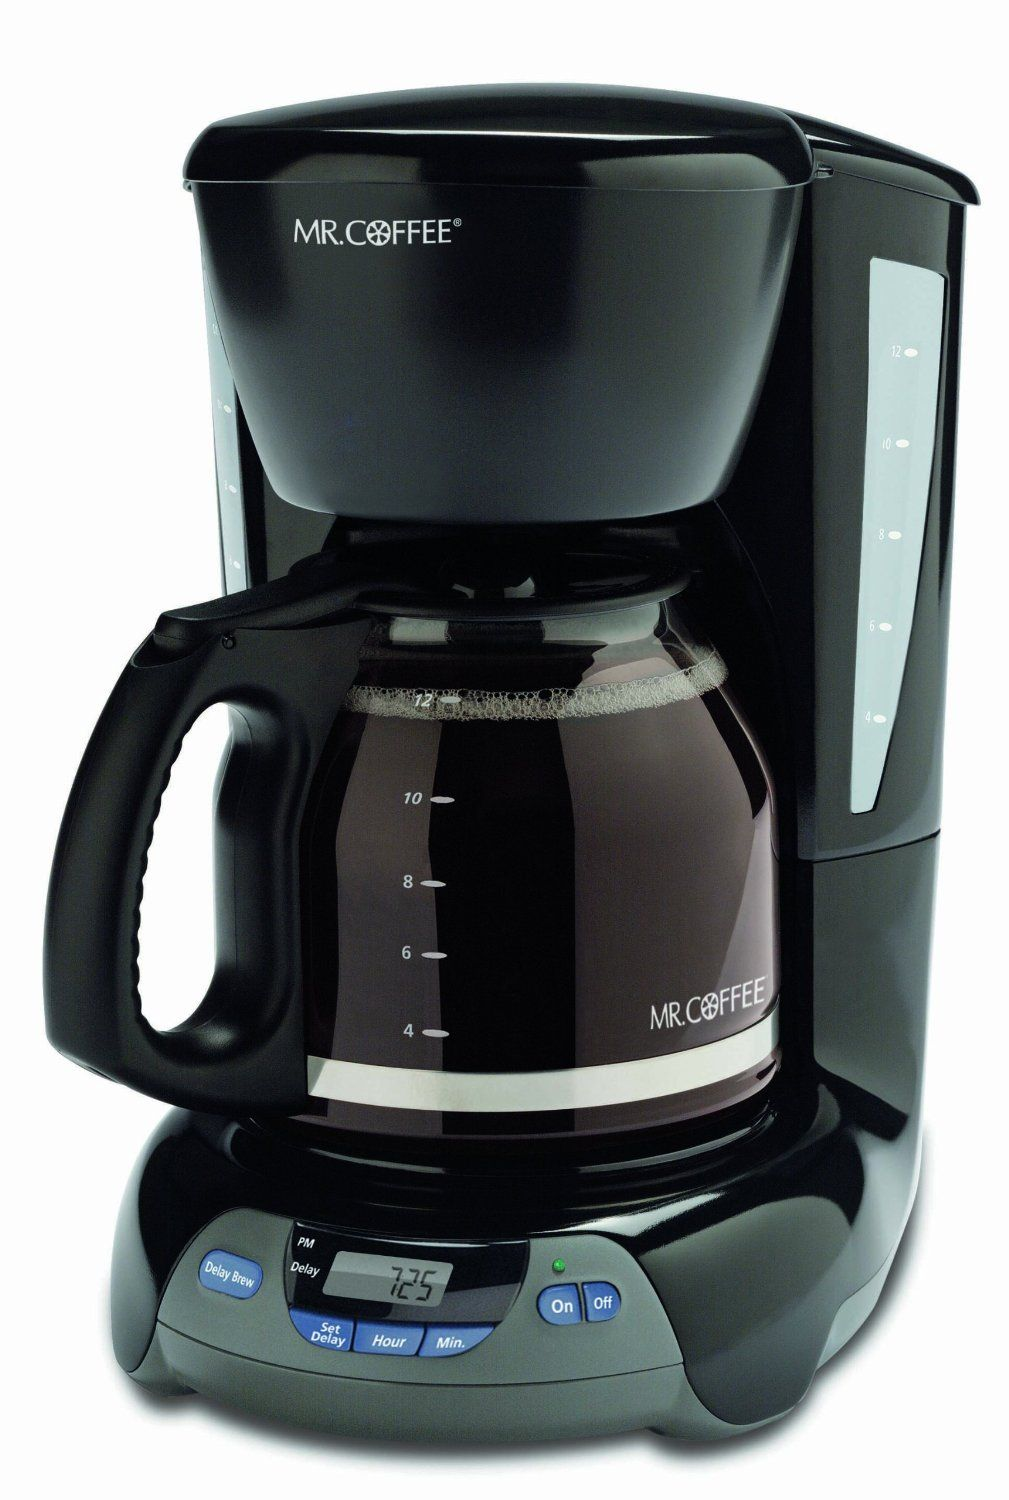 Mr. Coffee VBX23 12-Cup Programmable Coffeemaker, Black ...